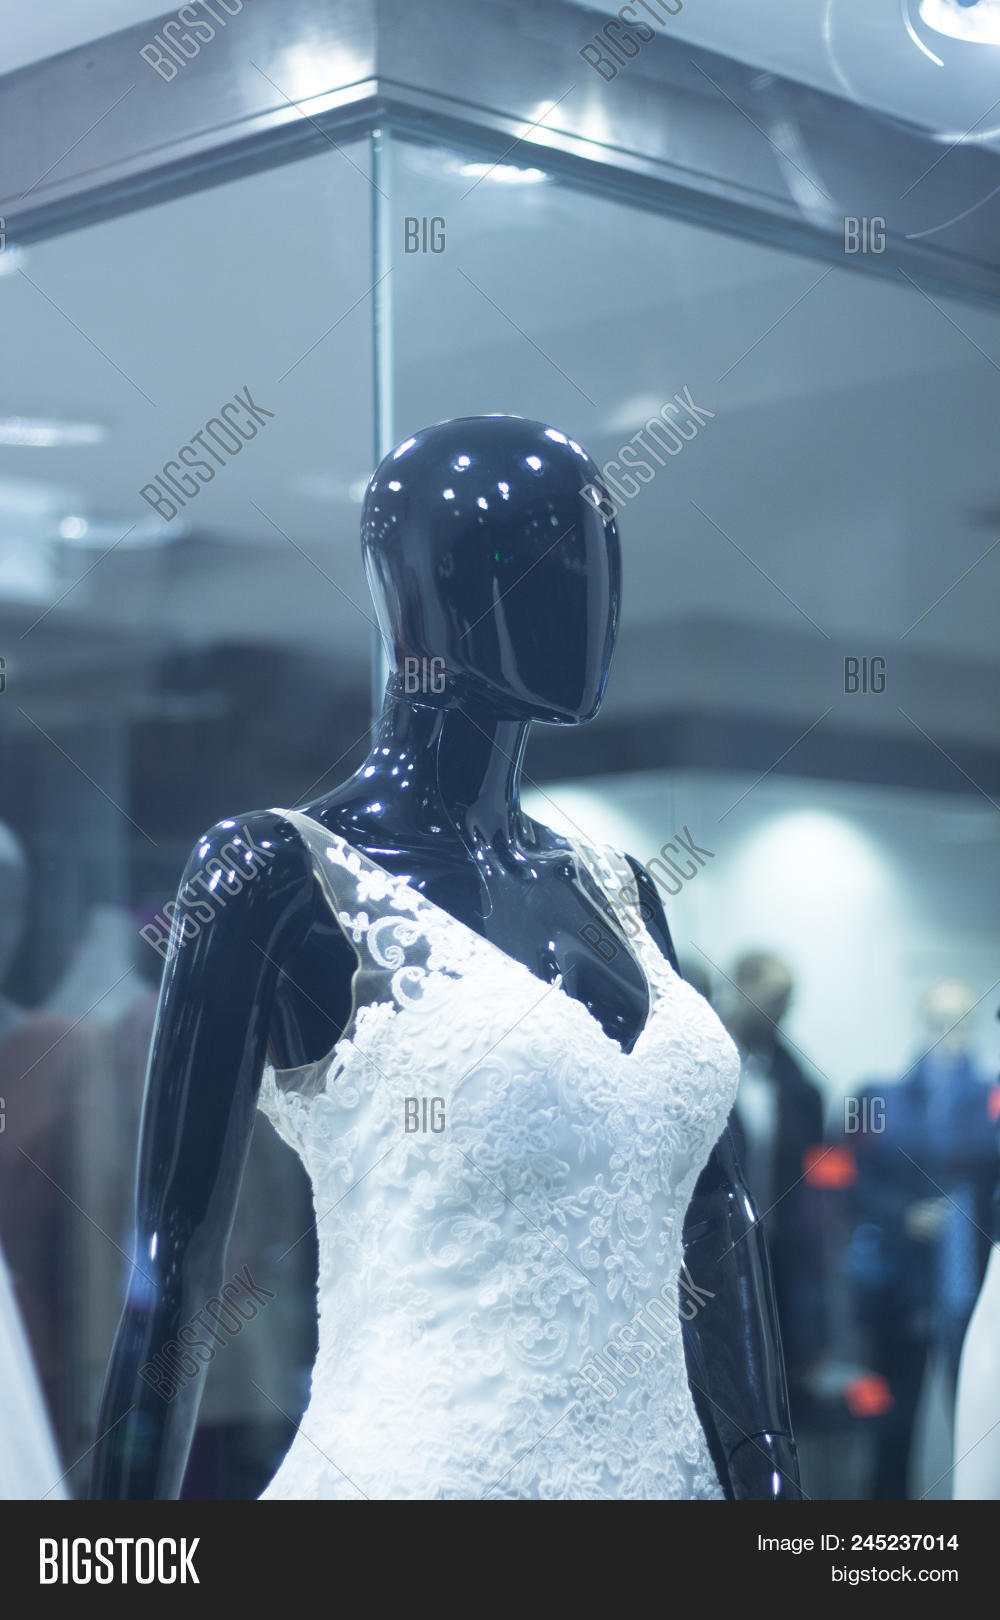 b192883ce347 Bridal shop dummy bride mannequin in department store with white wedding  dress.